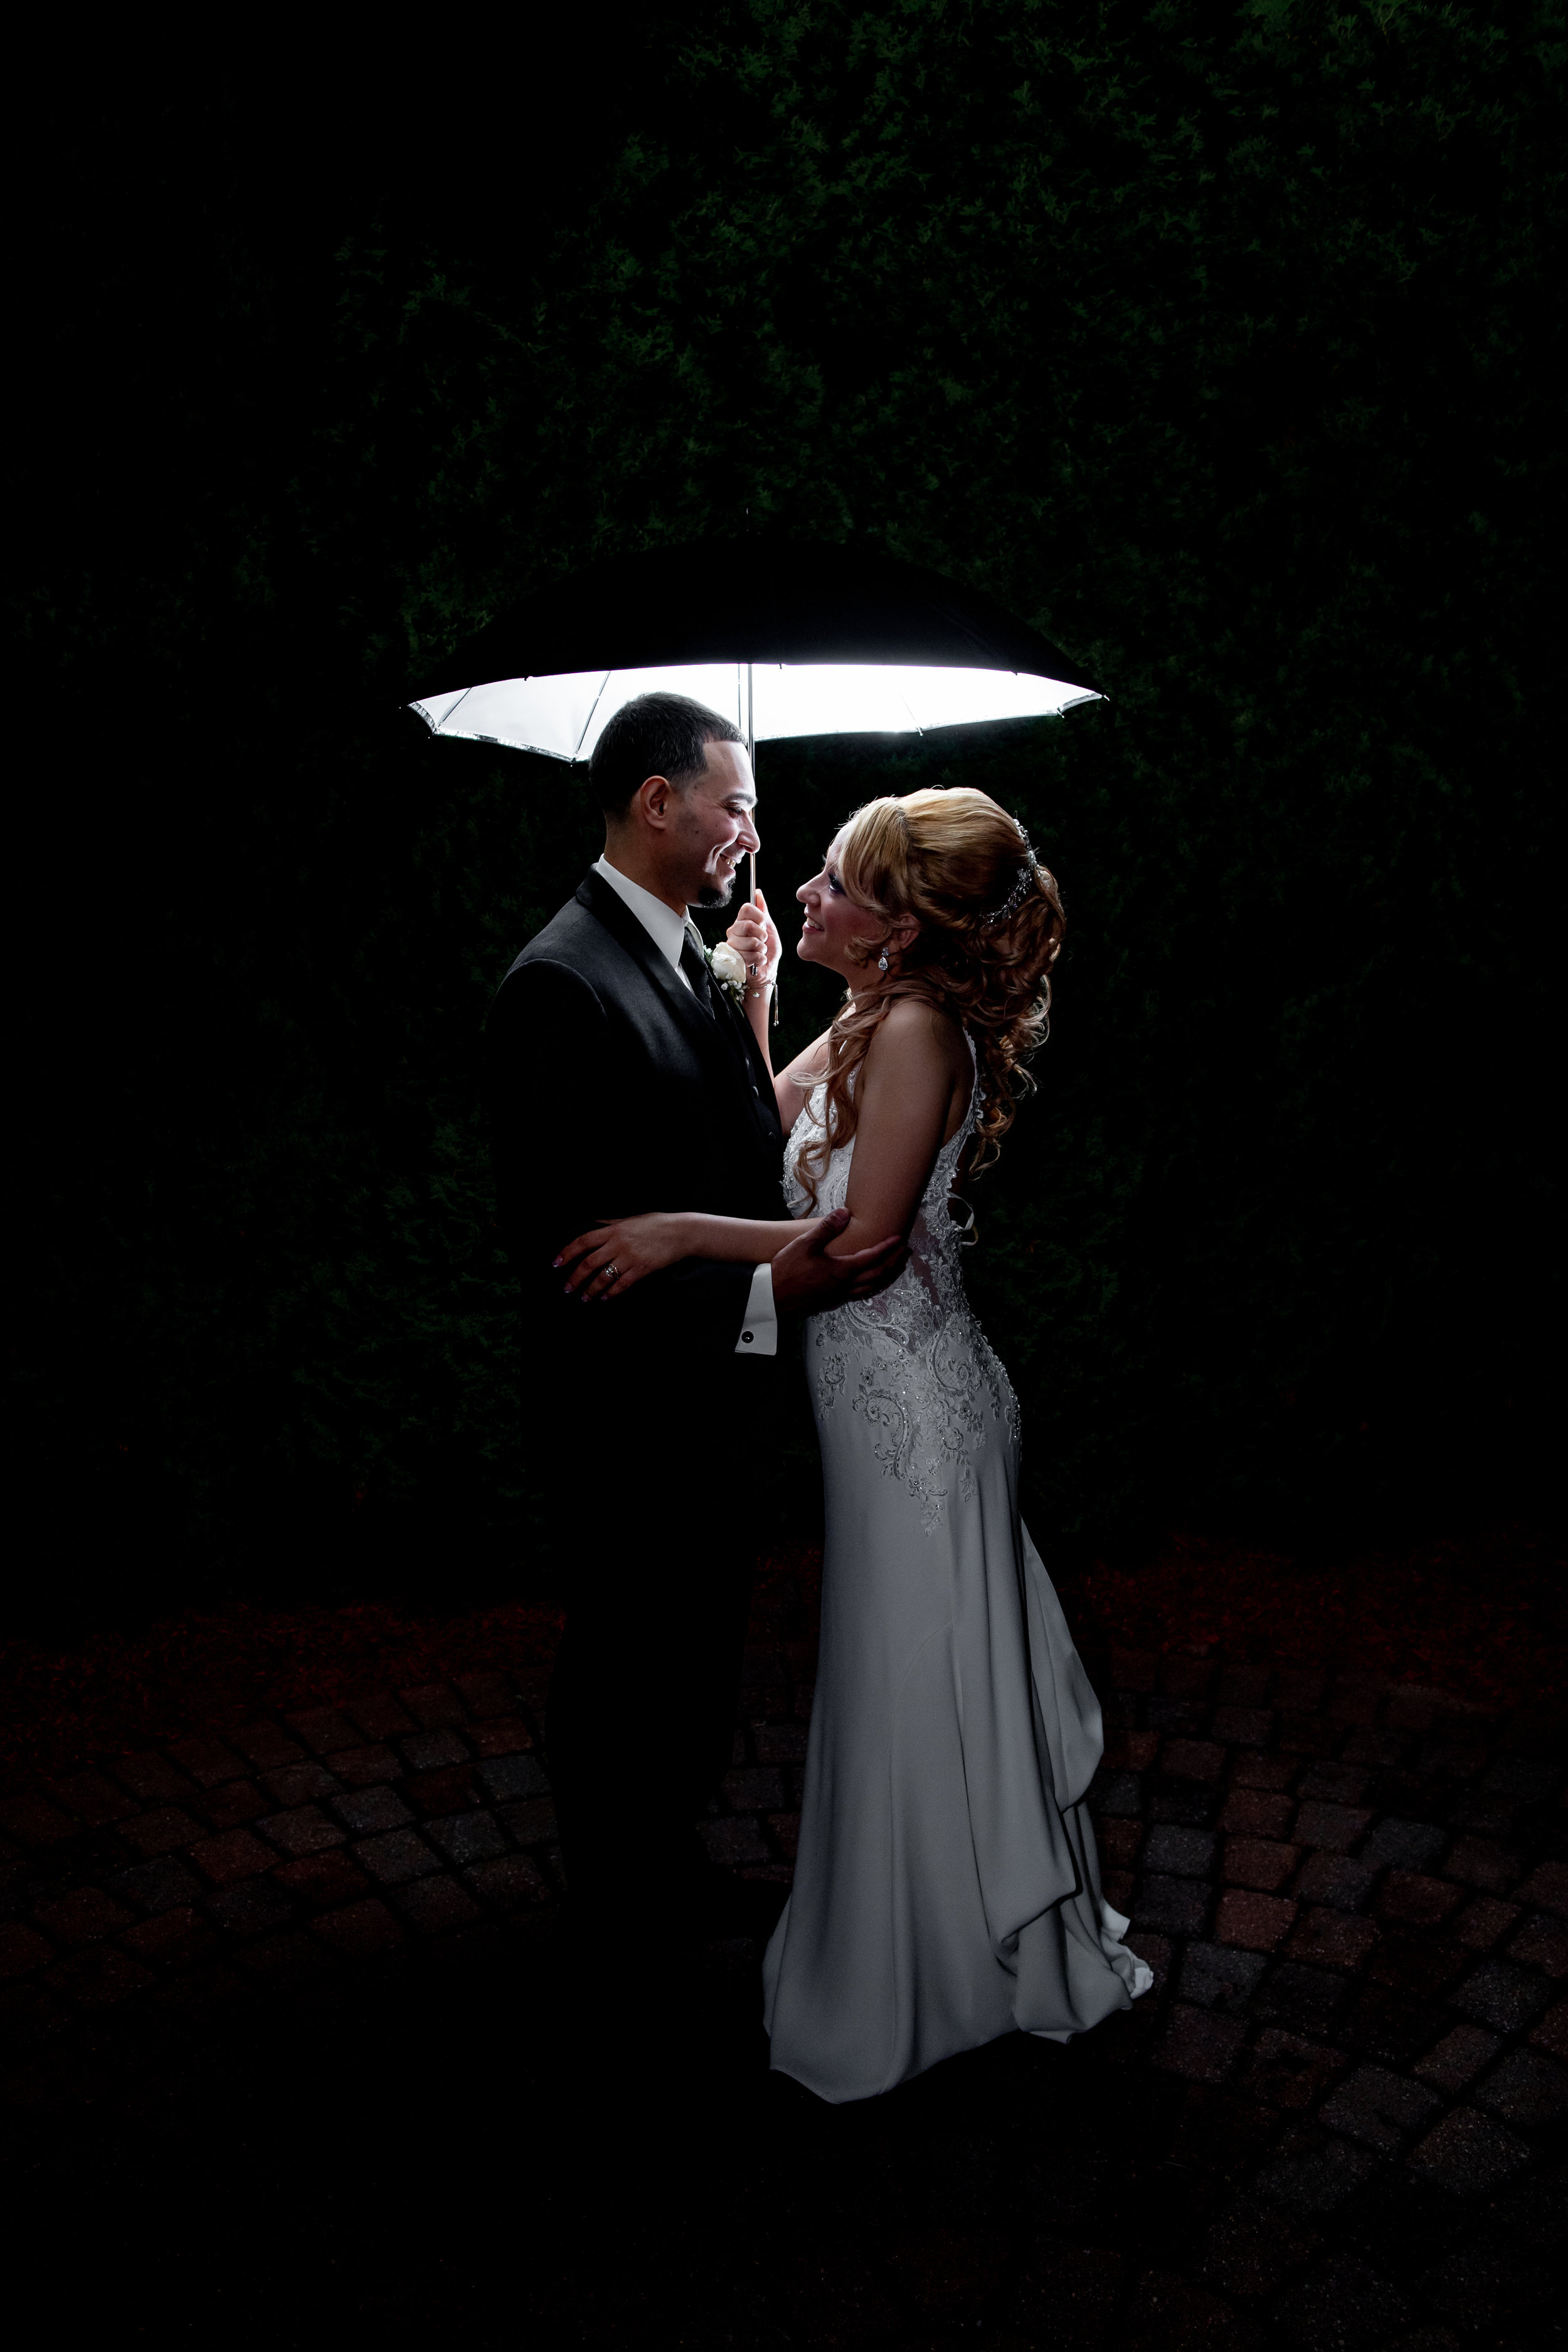 We took the couple out for 5 minutes during the reception to take a night time photo of them.